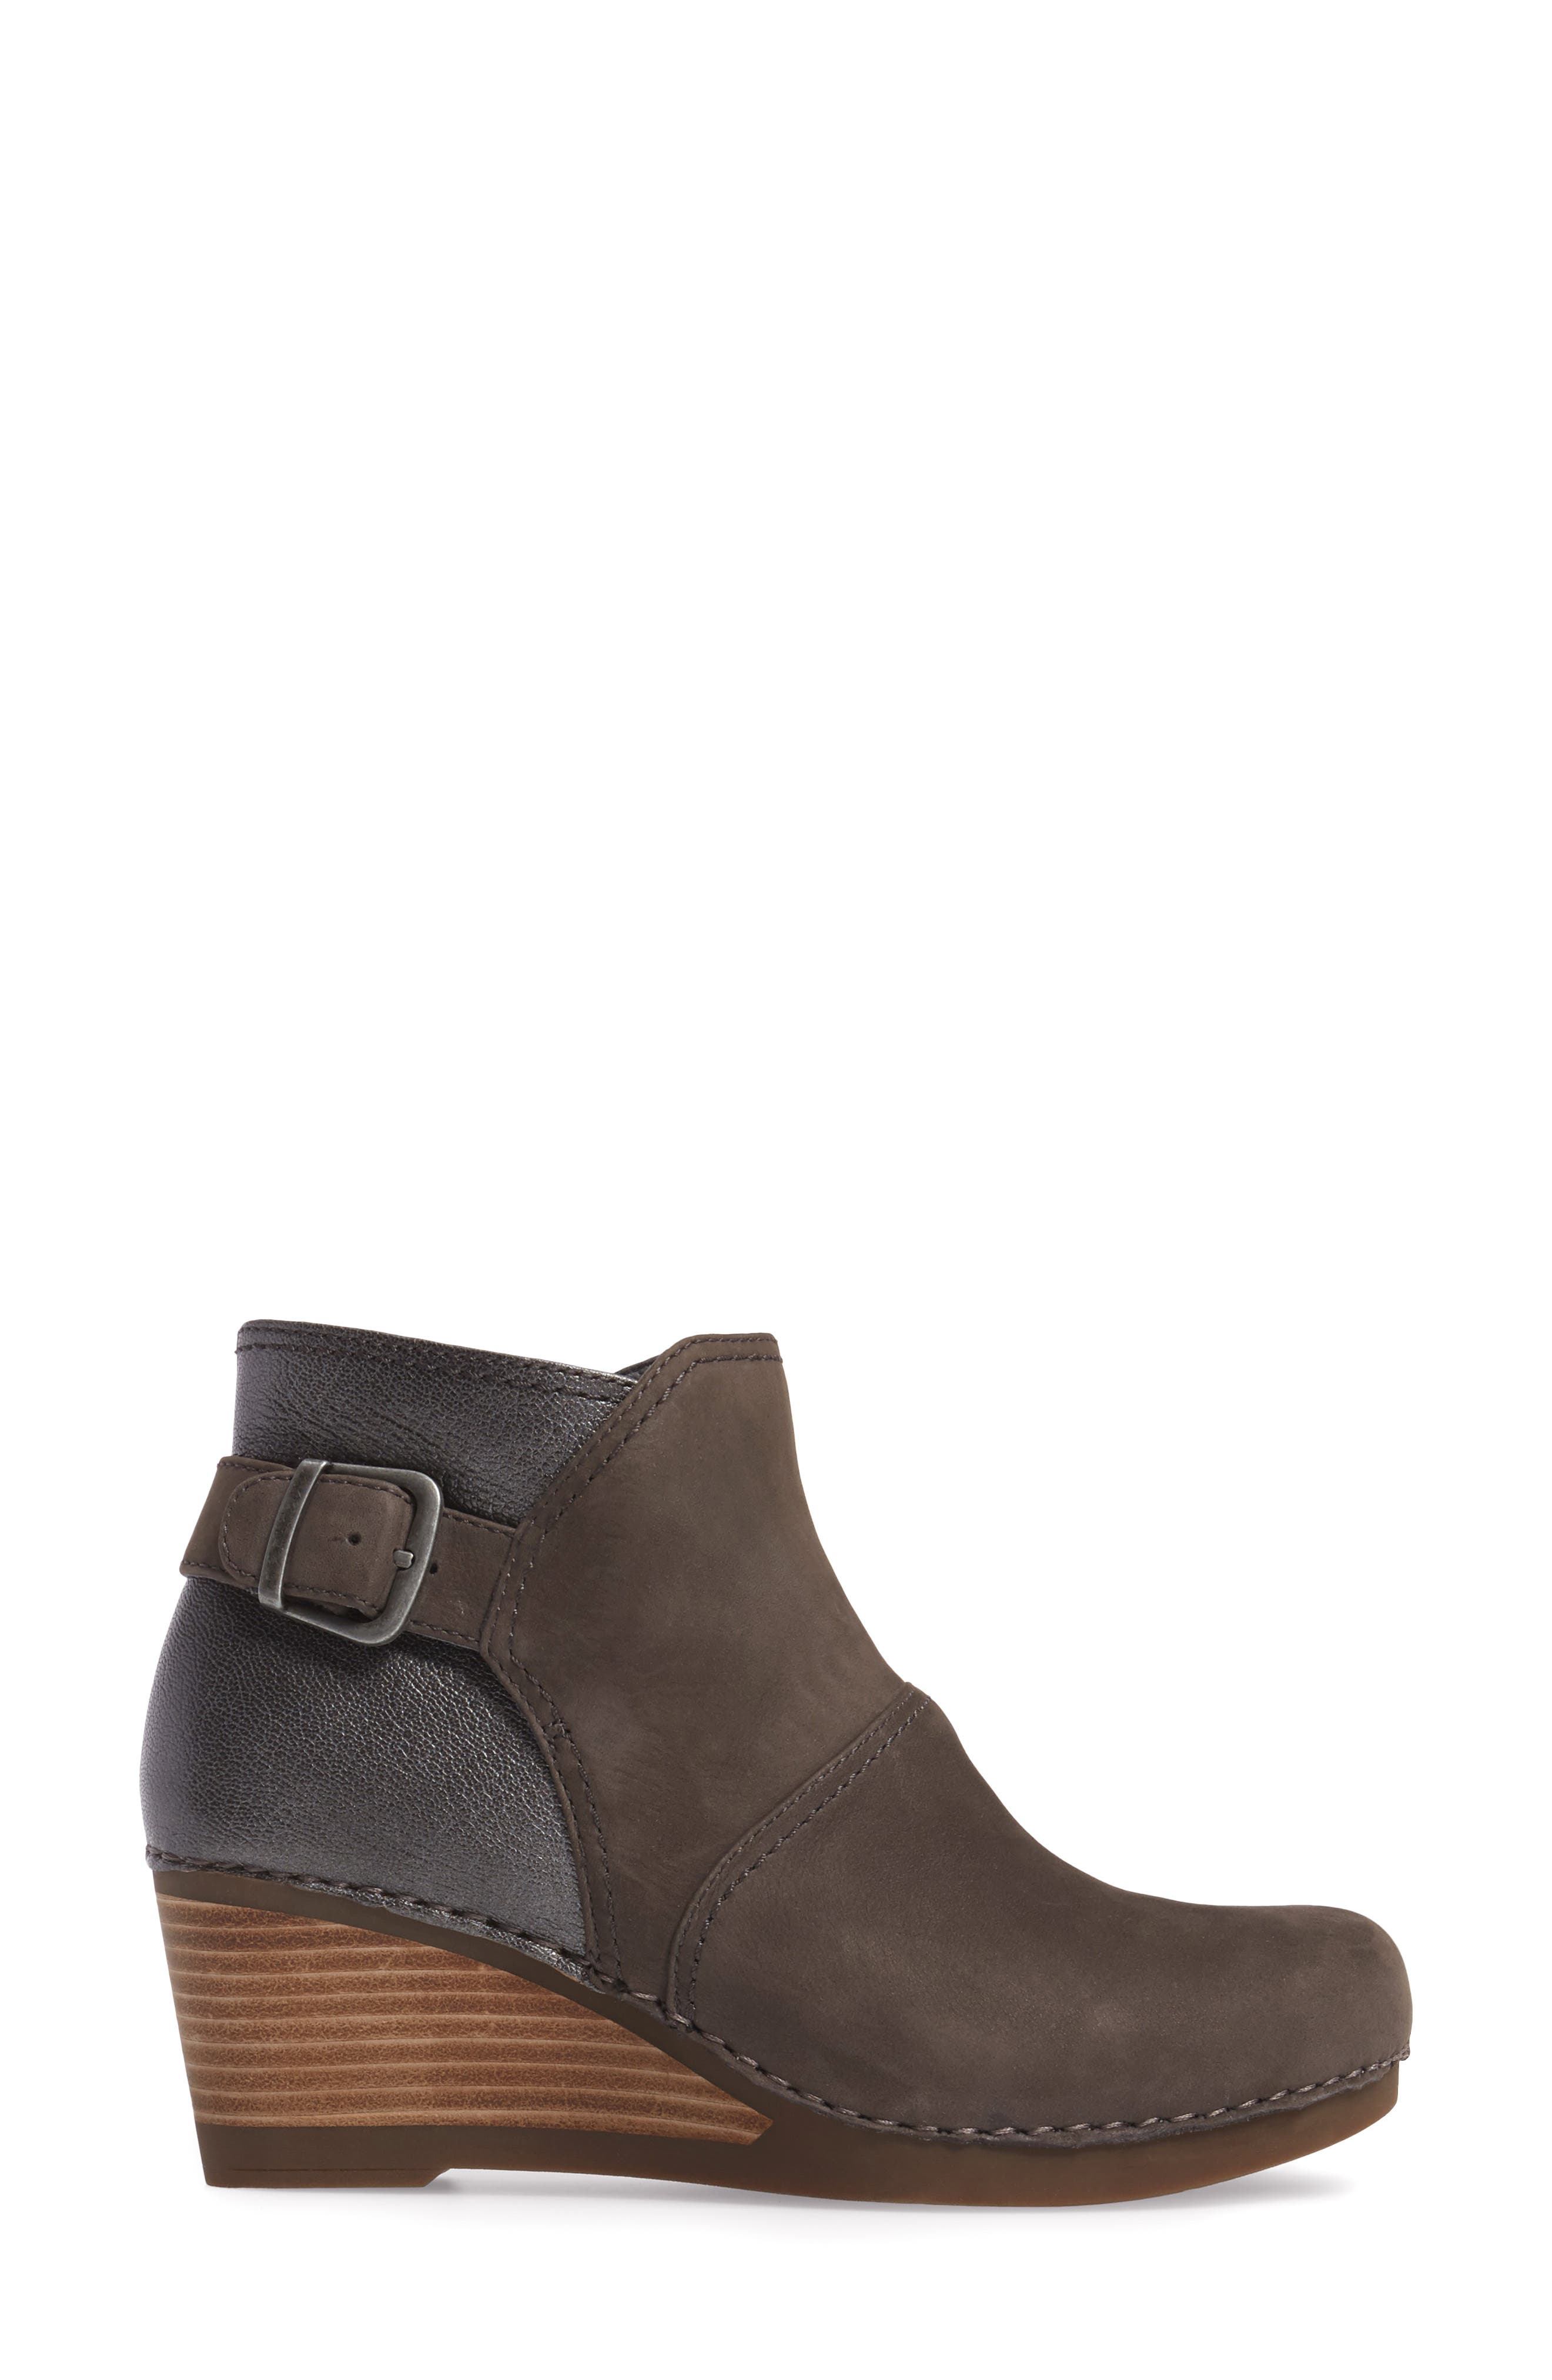 'Shirley' Wedge Bootie,                             Alternate thumbnail 3, color,                             Grey Nubuck Leather